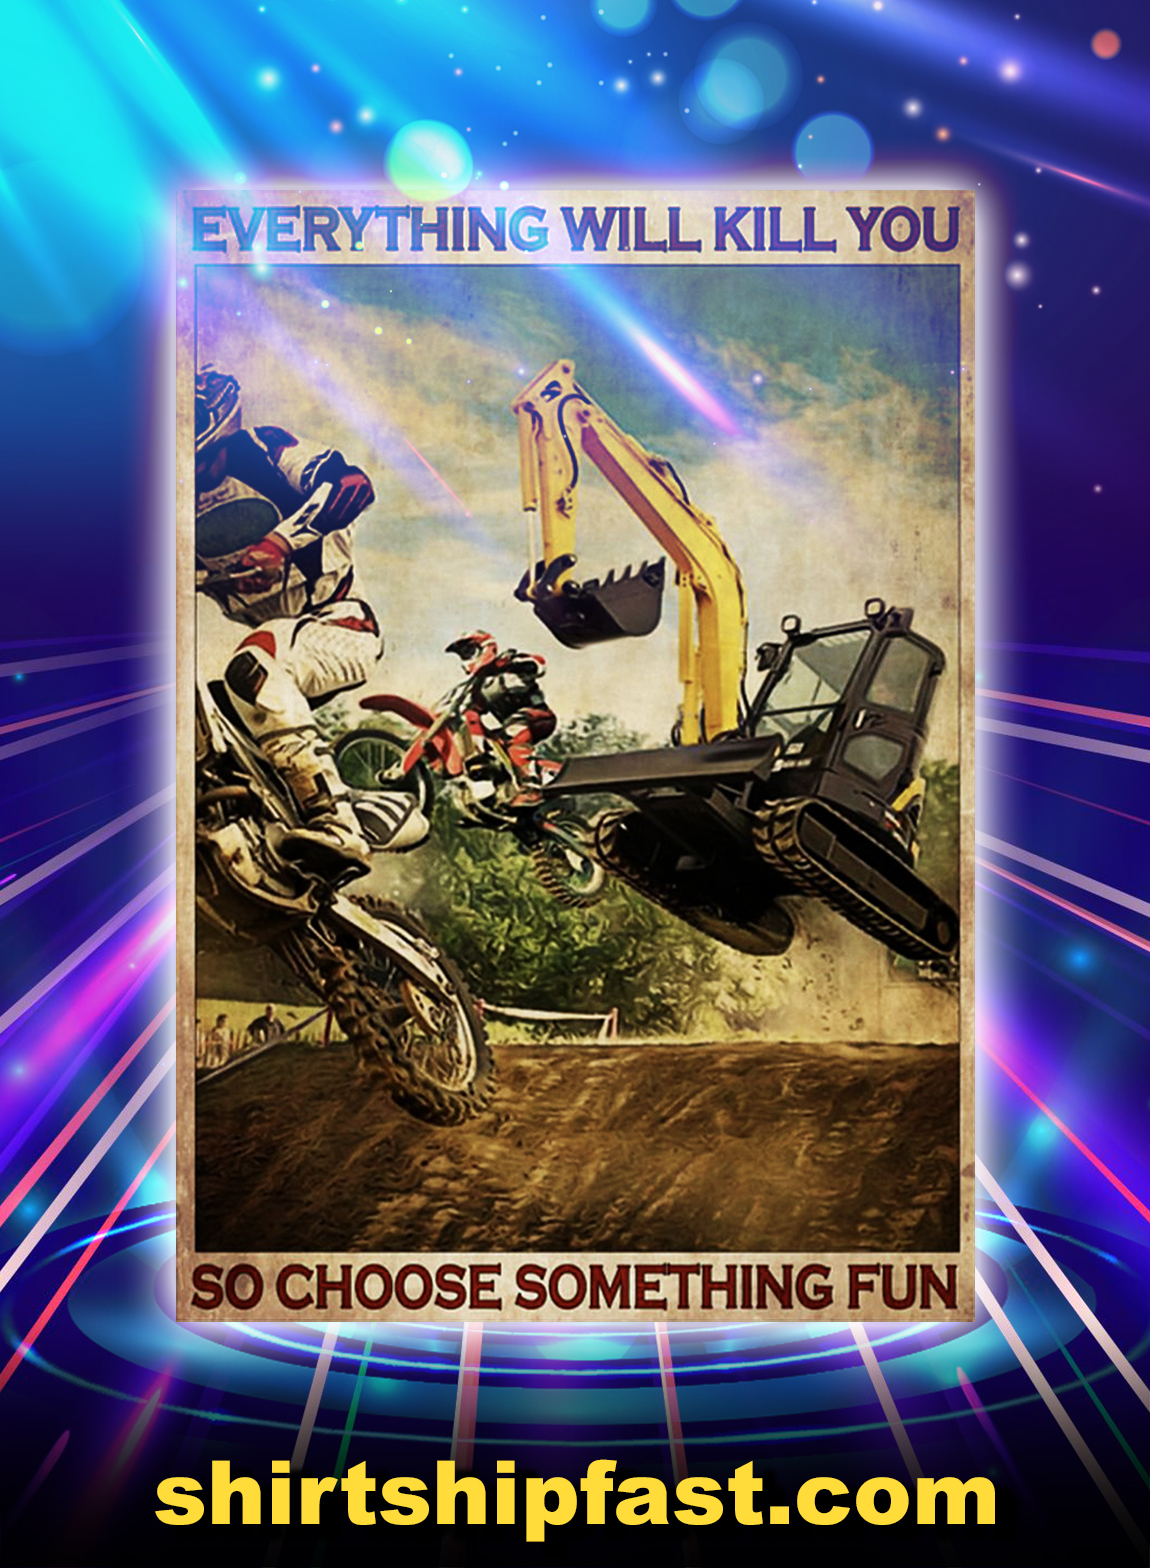 MOTOCROSS AND EXCAVATOR Everything will kill you poster - A3